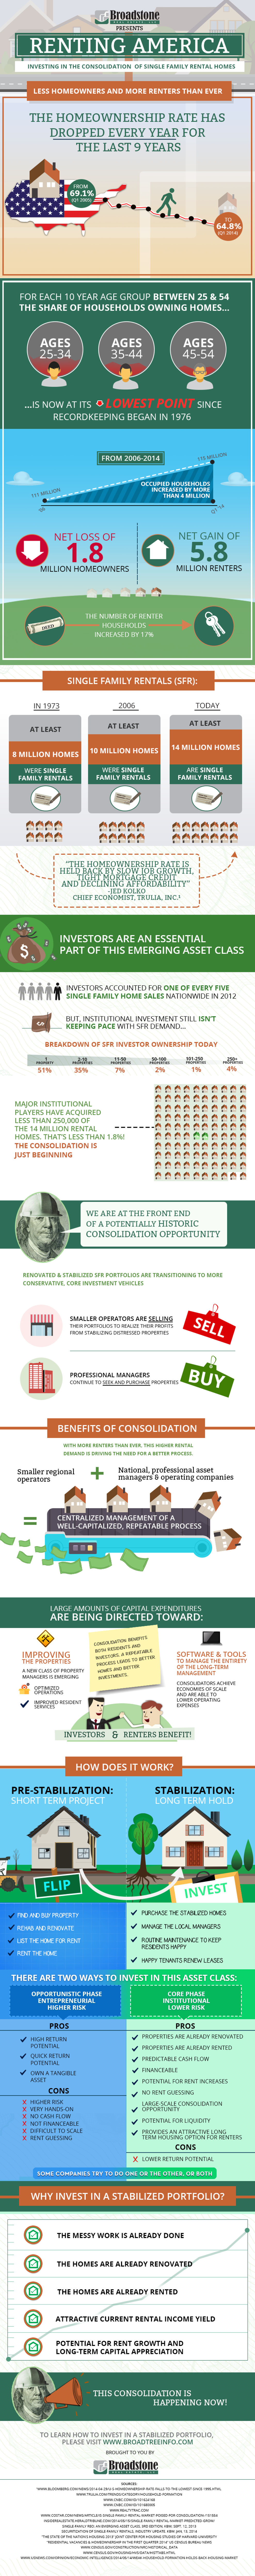 Investing In The Consolidation Of Single Family Rental Homes Infographic